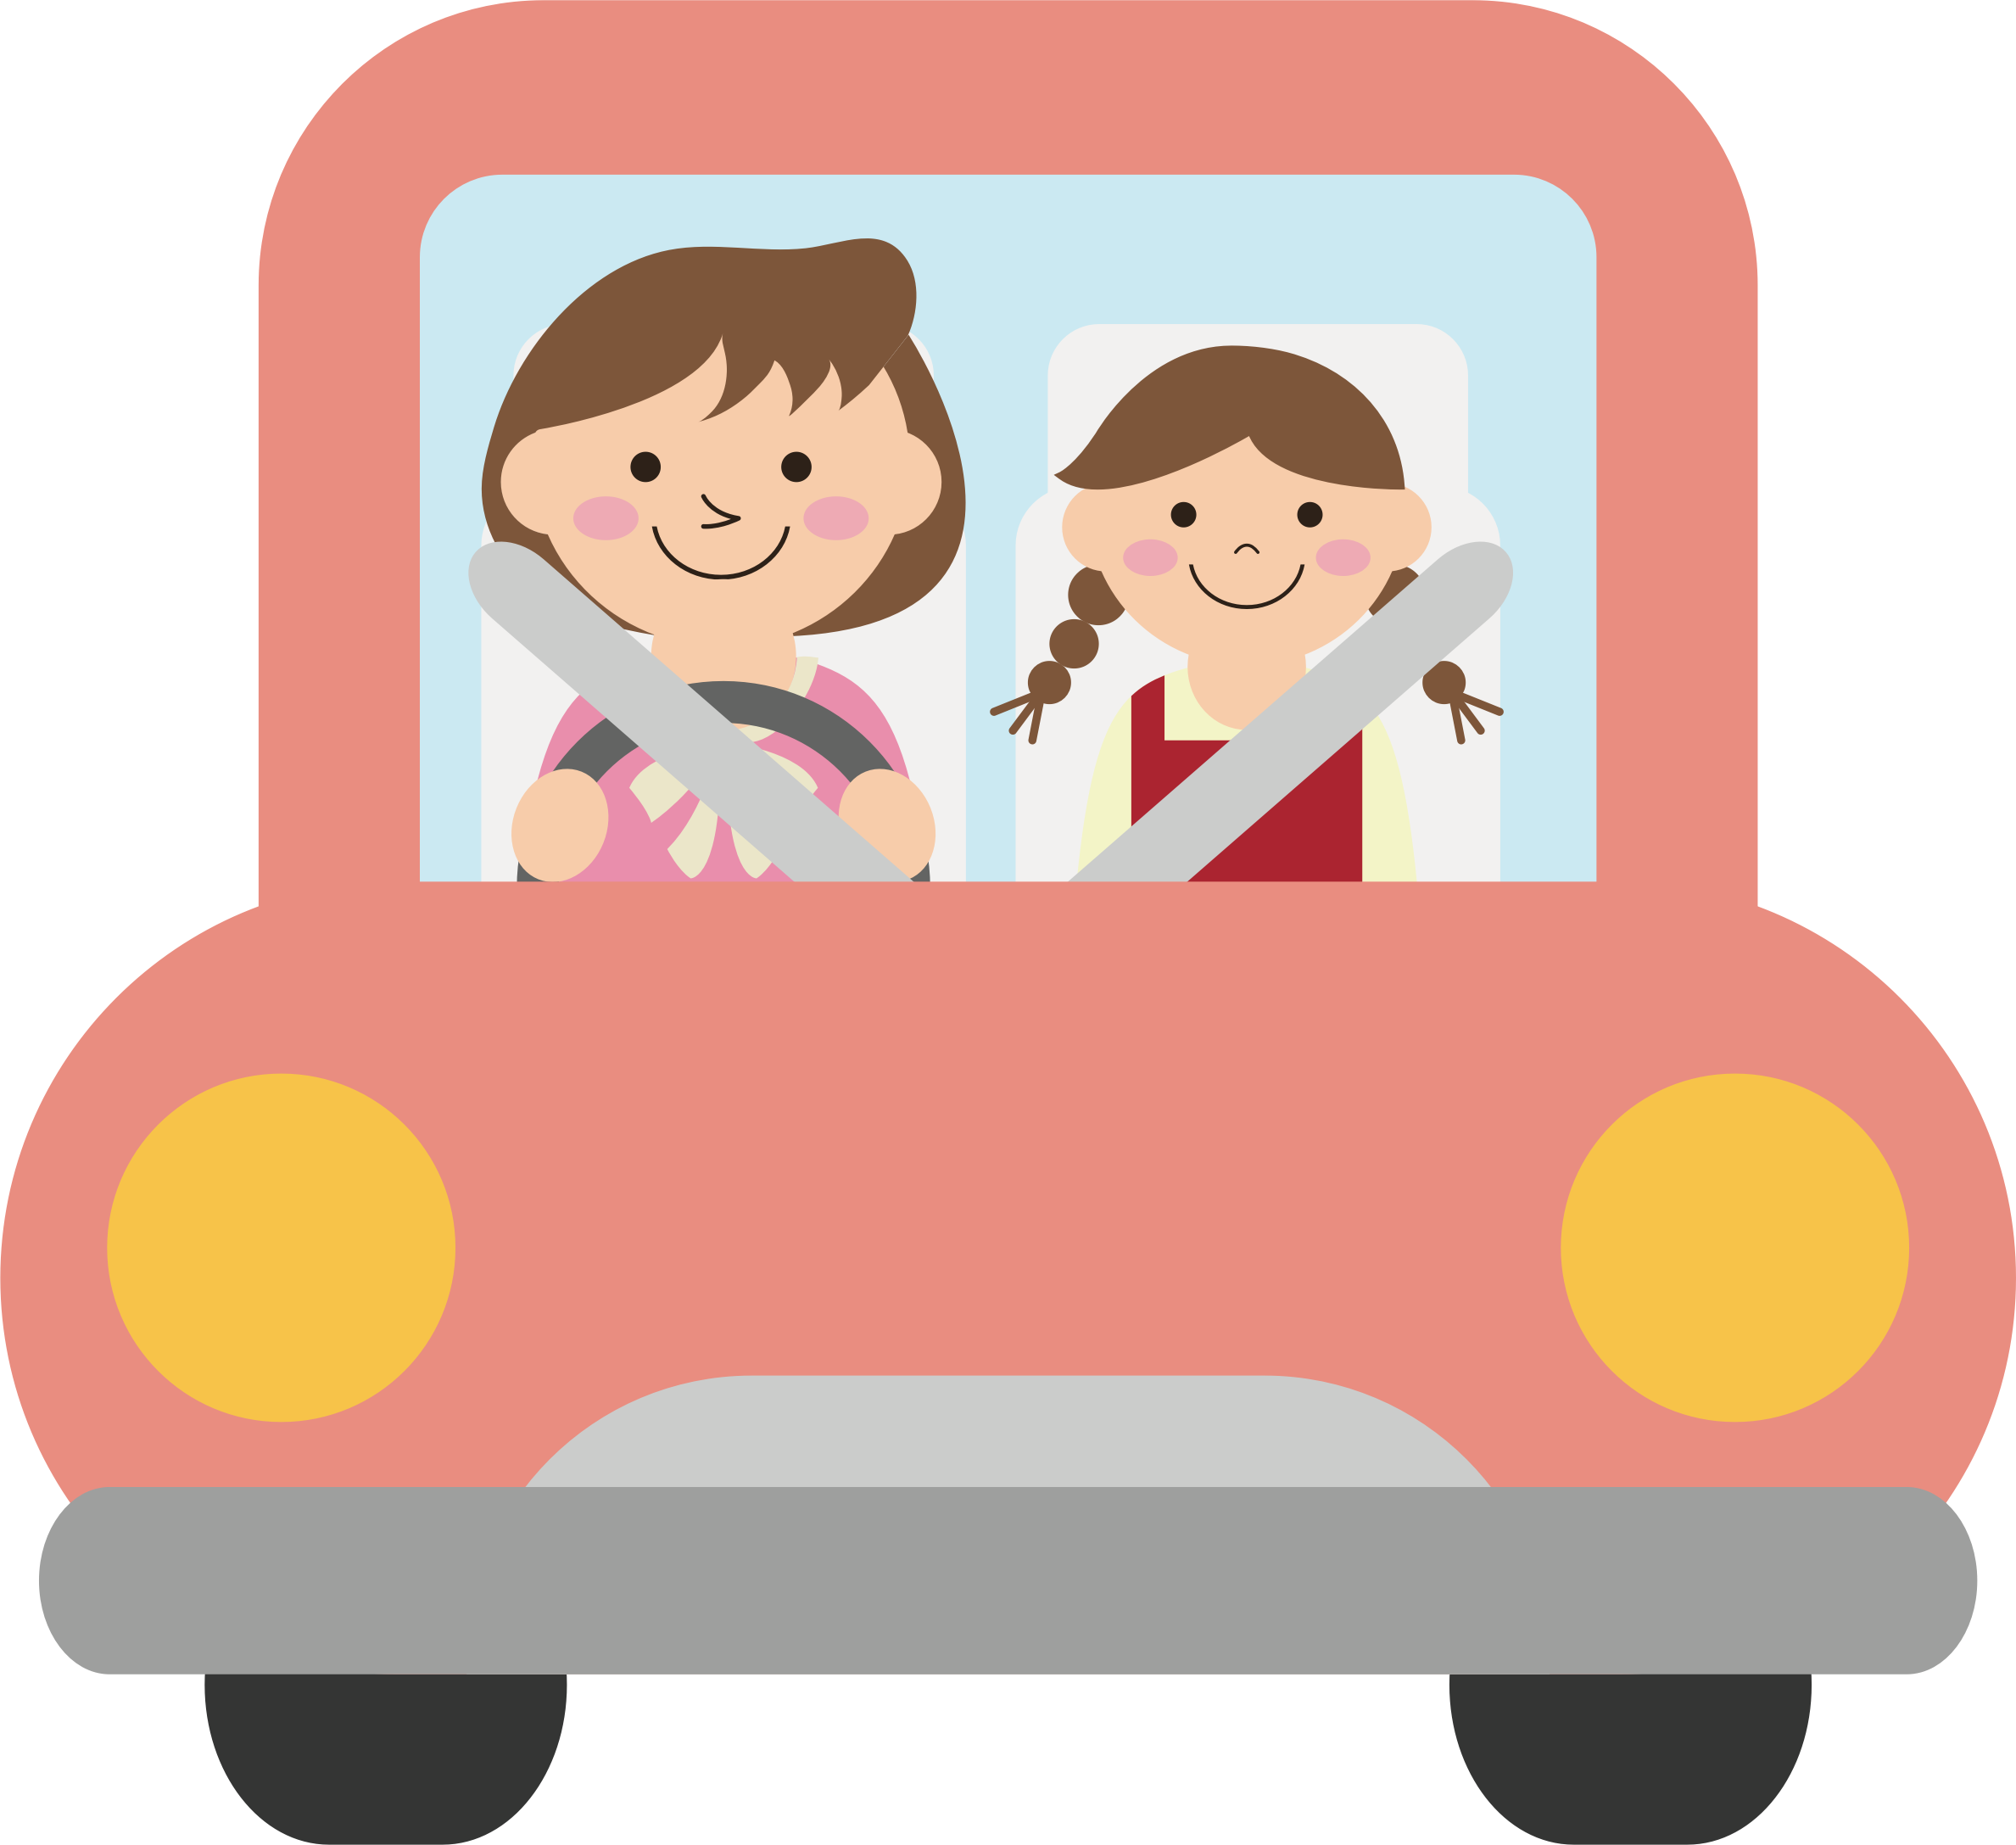 Car ride clipart free download Clipart - Car Ride (#3) free download